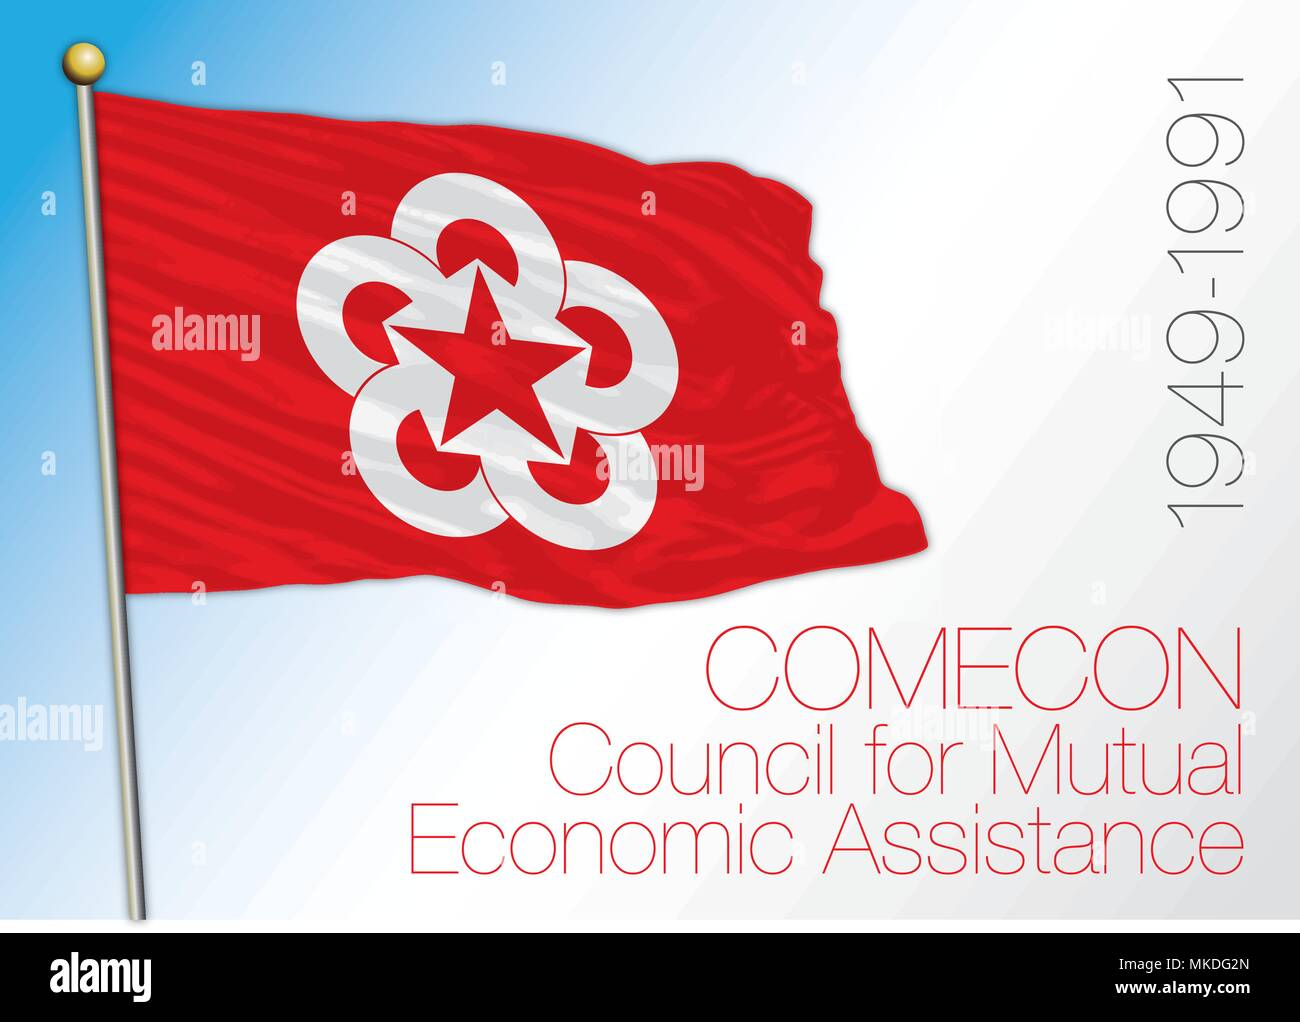 Comecon historical flag, 1945 - 1991 - Stock Vector